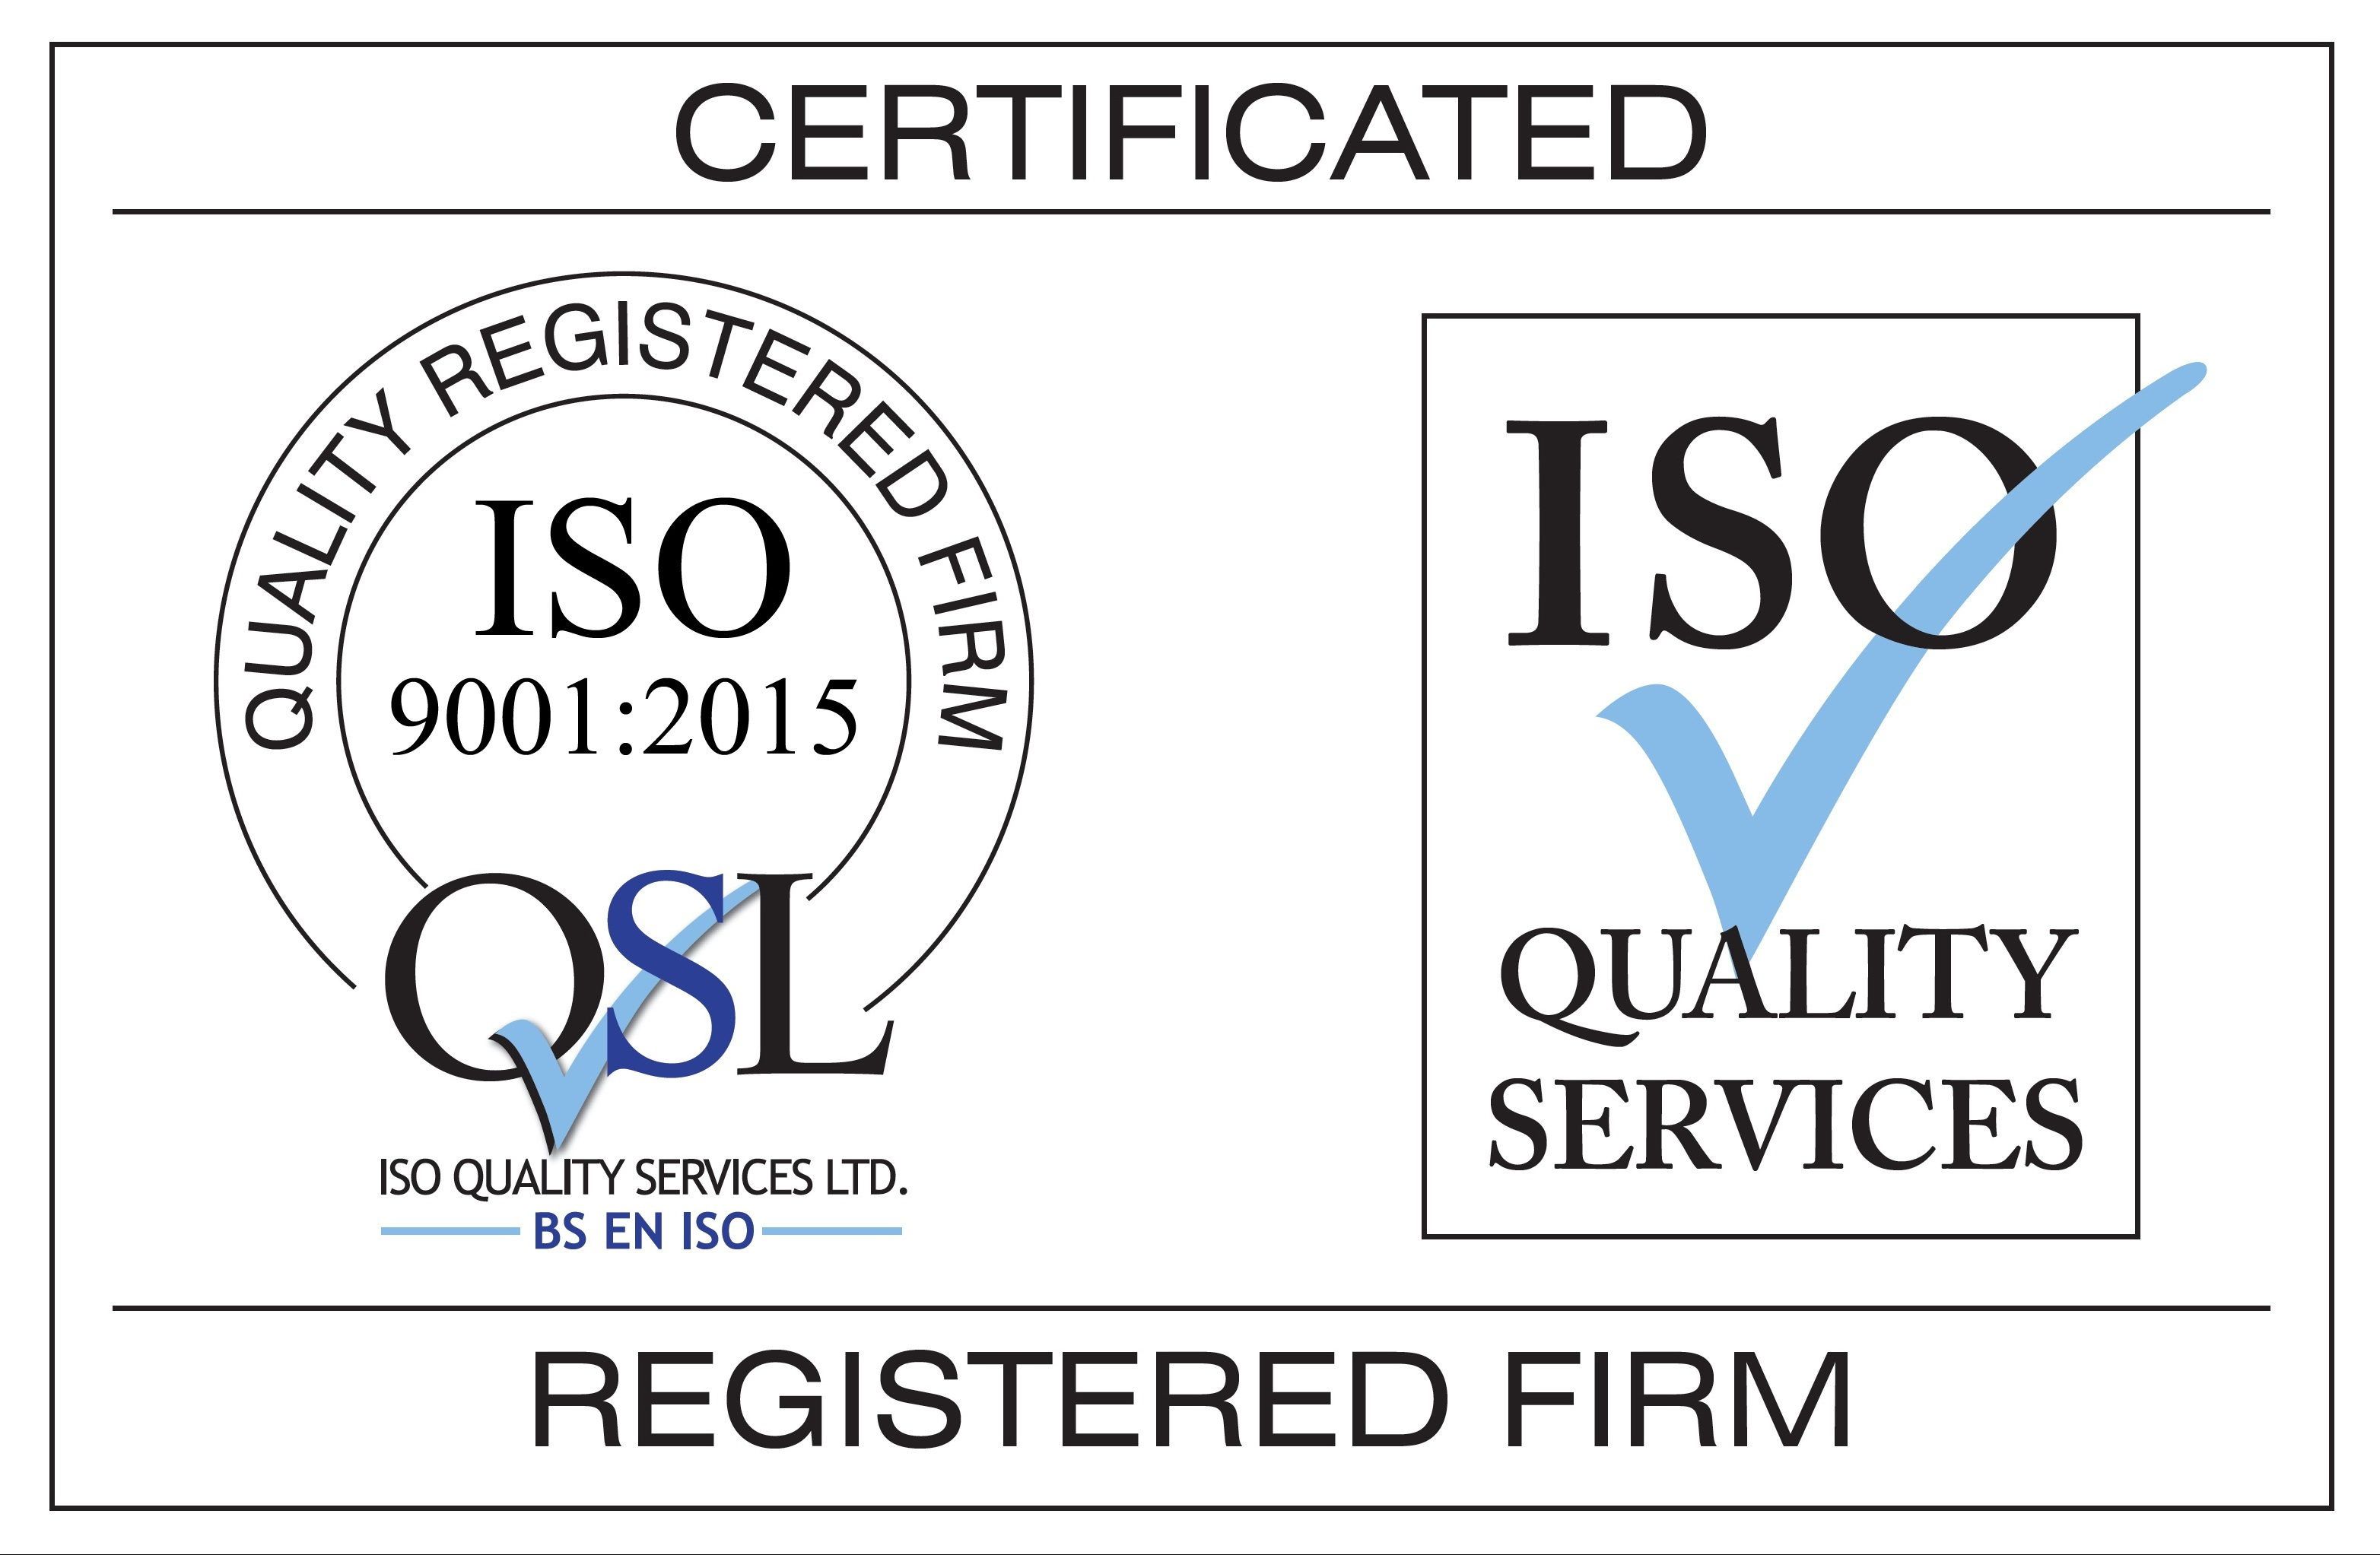 Server Case UK Obtains Renewed ISO 9001:2015 Certification